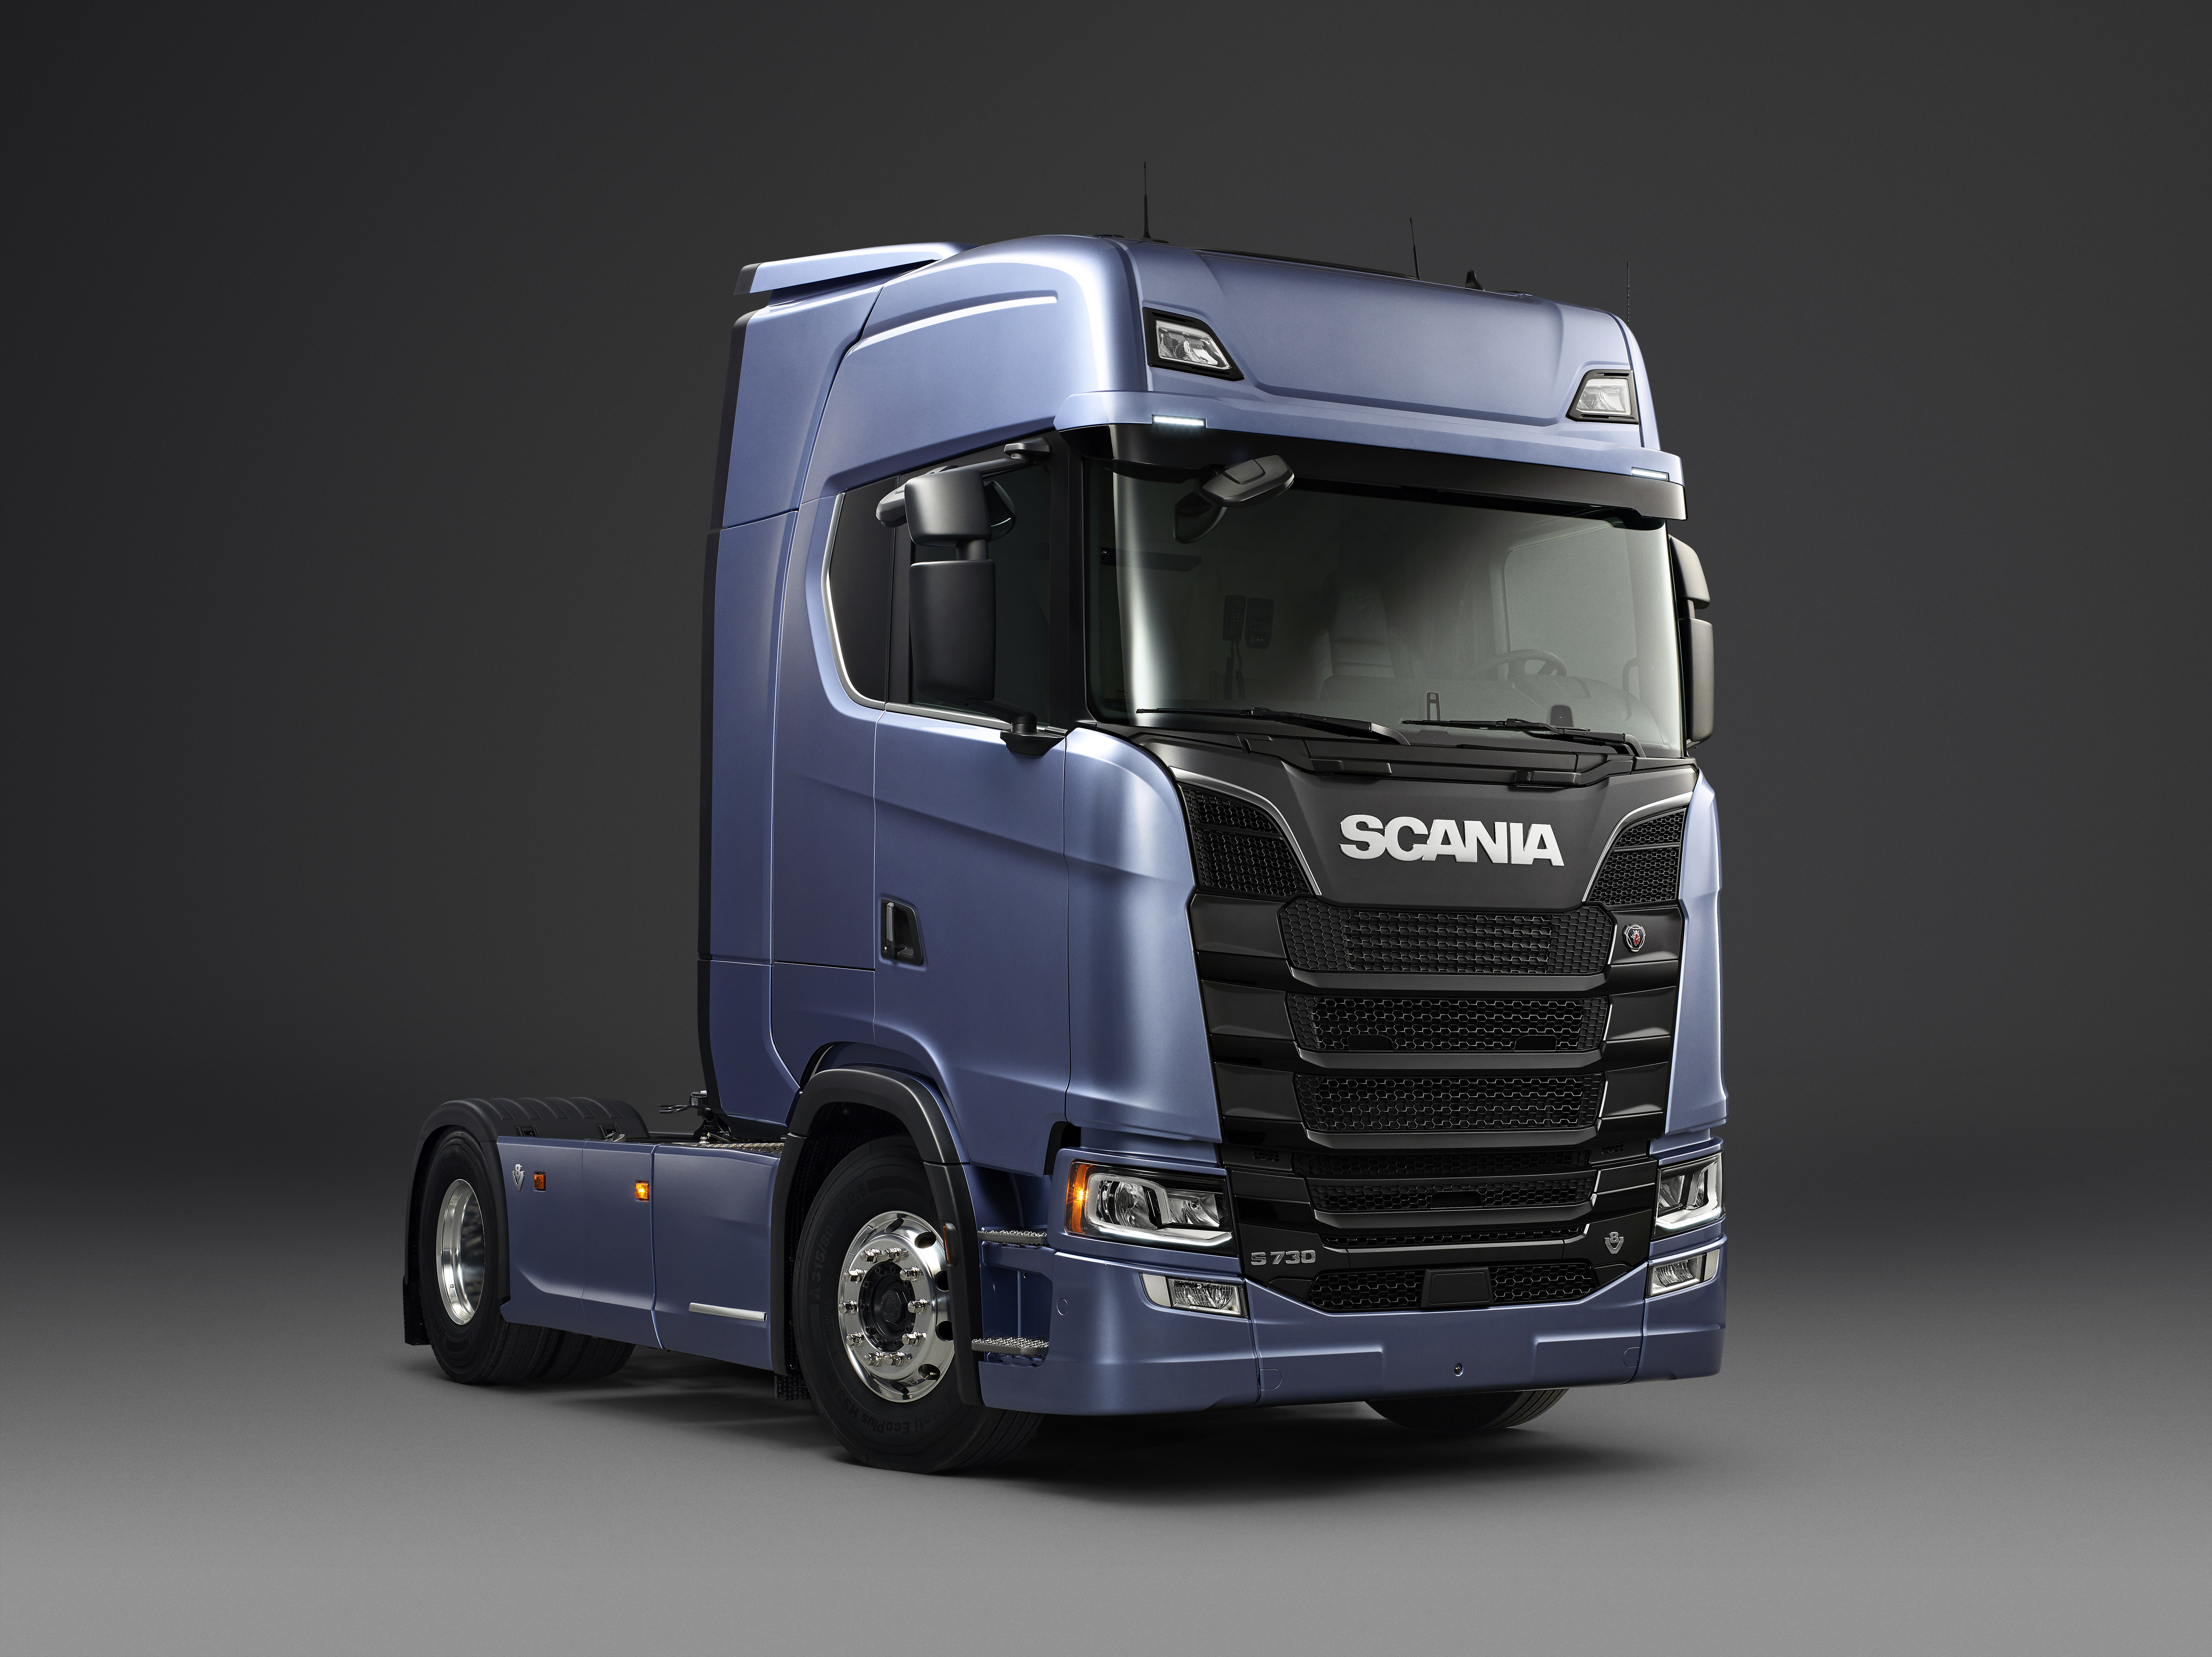 Scania introduces new truck range | Scania Group